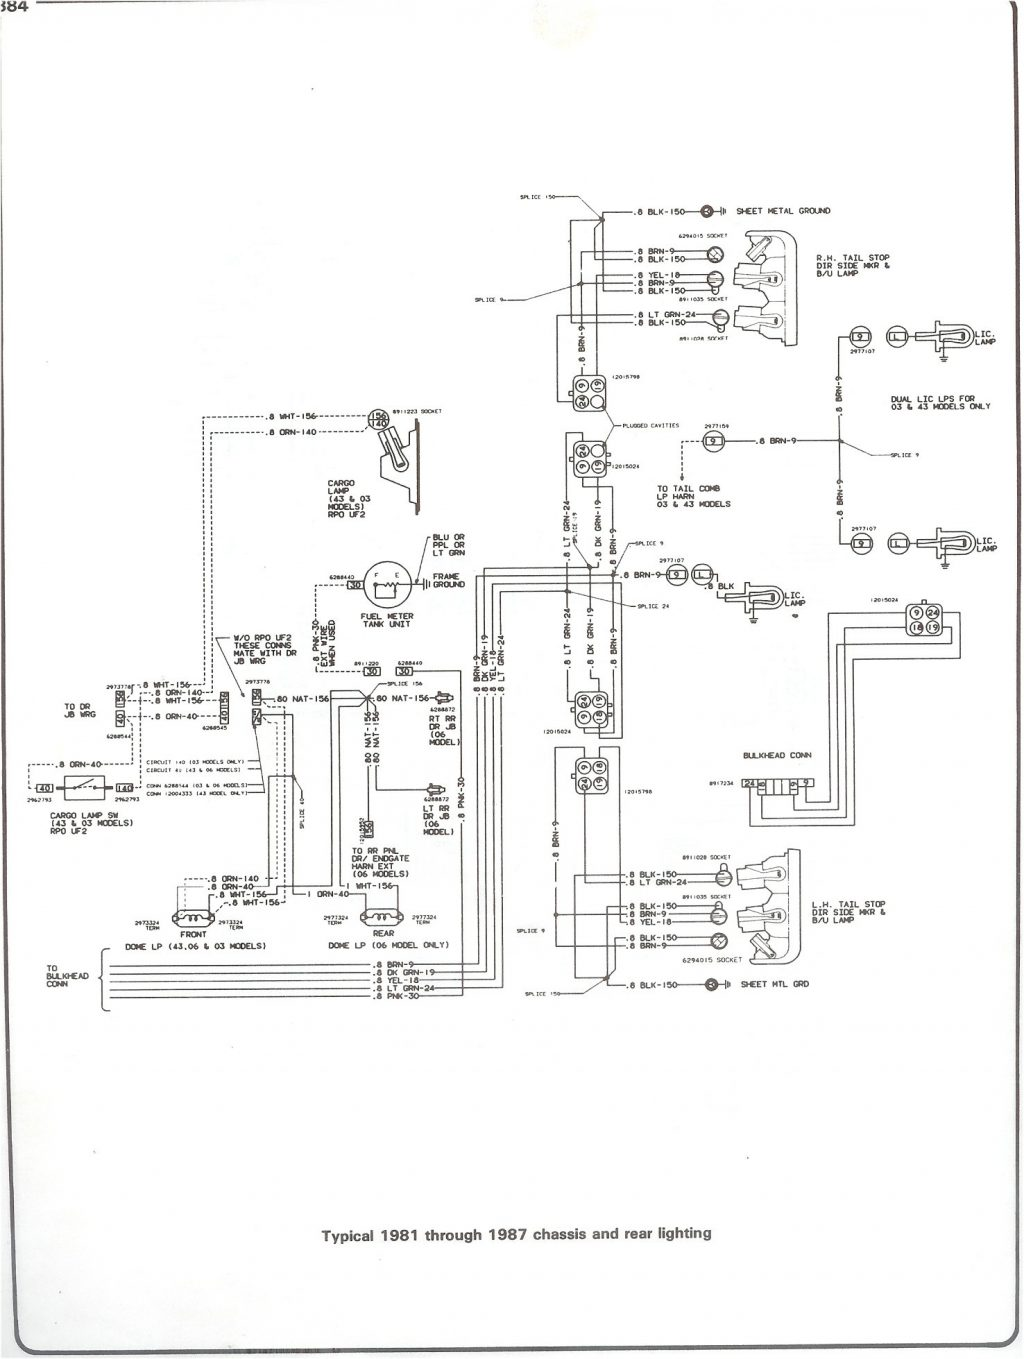 85 chevy silverado wiring diagram 2011 toyota sienna symbol drawing at getdrawings free for